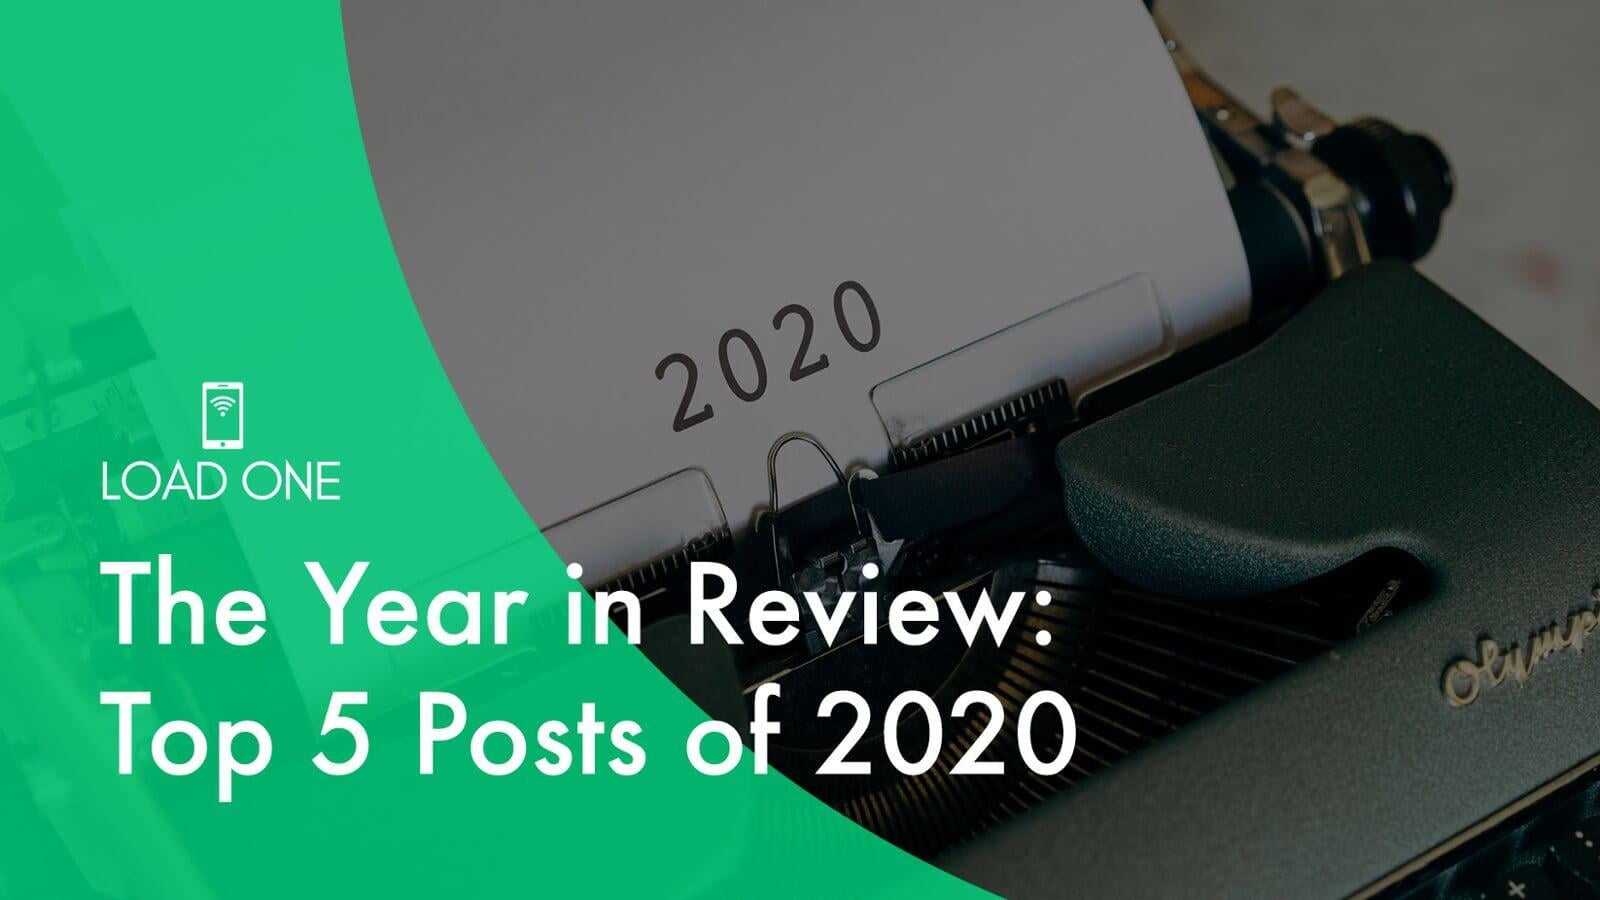 The Year in Review: Top 5 Posts of 2020